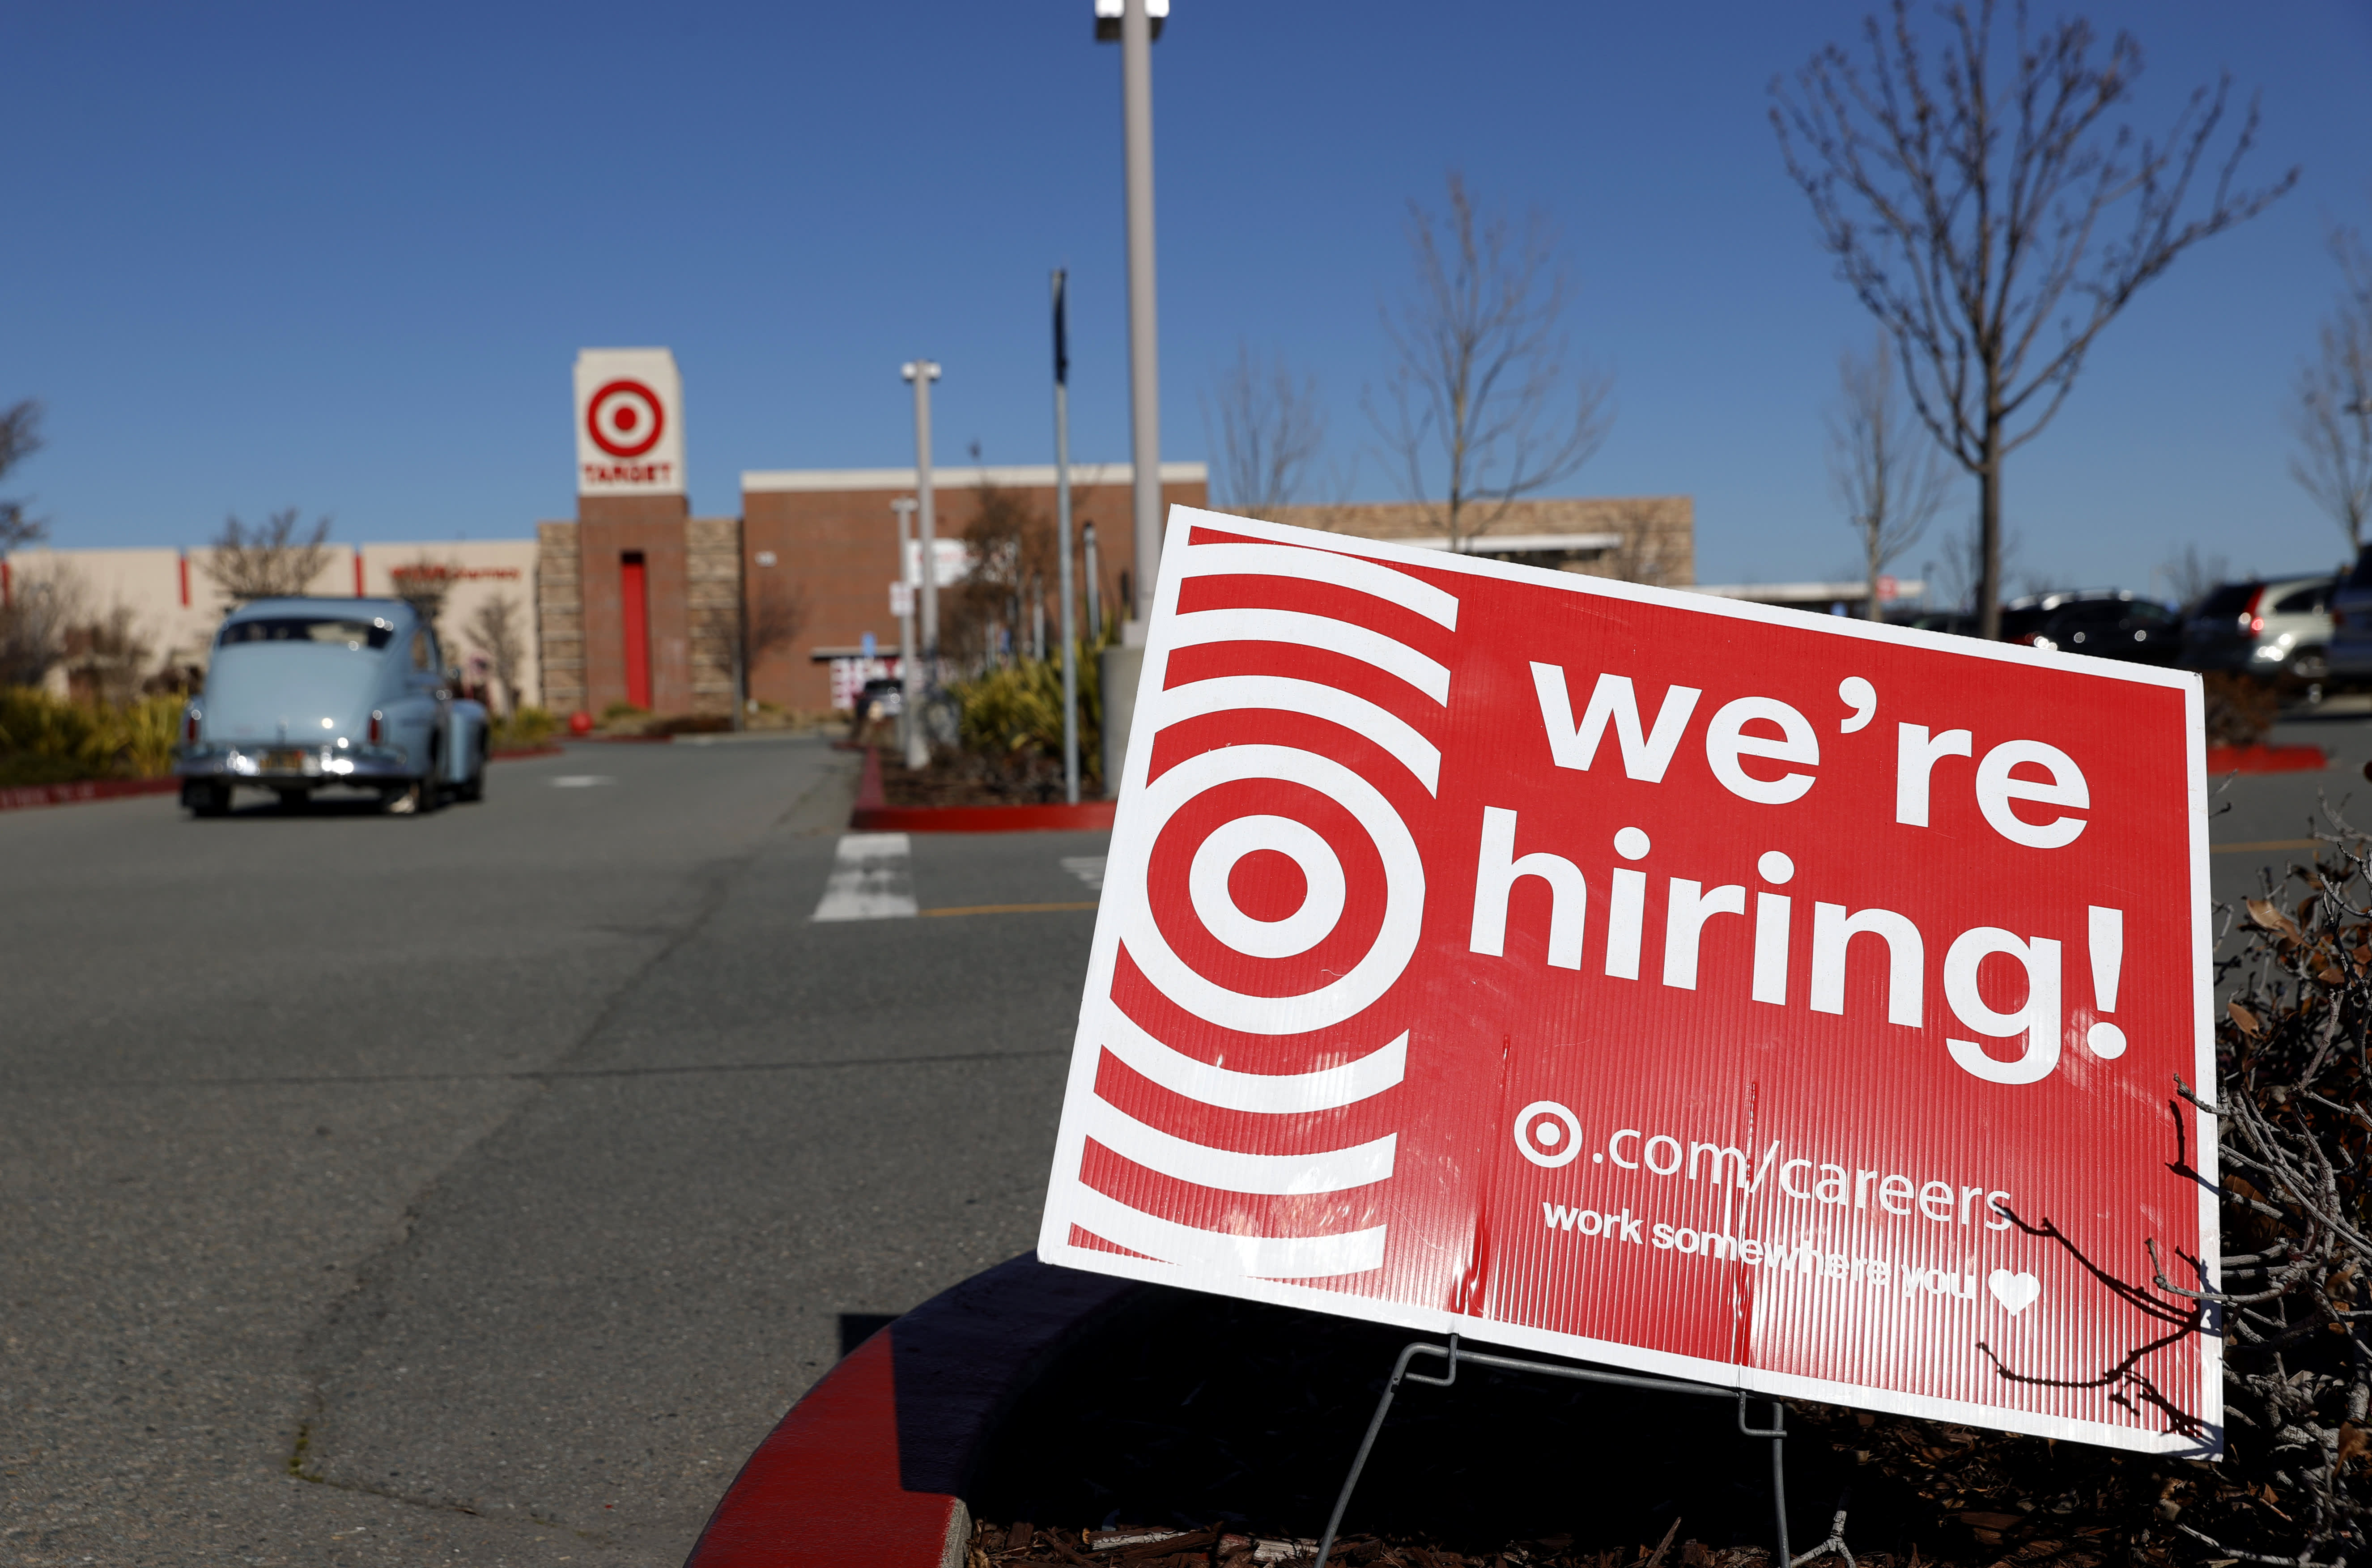 Target to pay 100% of college tuition and textbooks in bid to attract workers